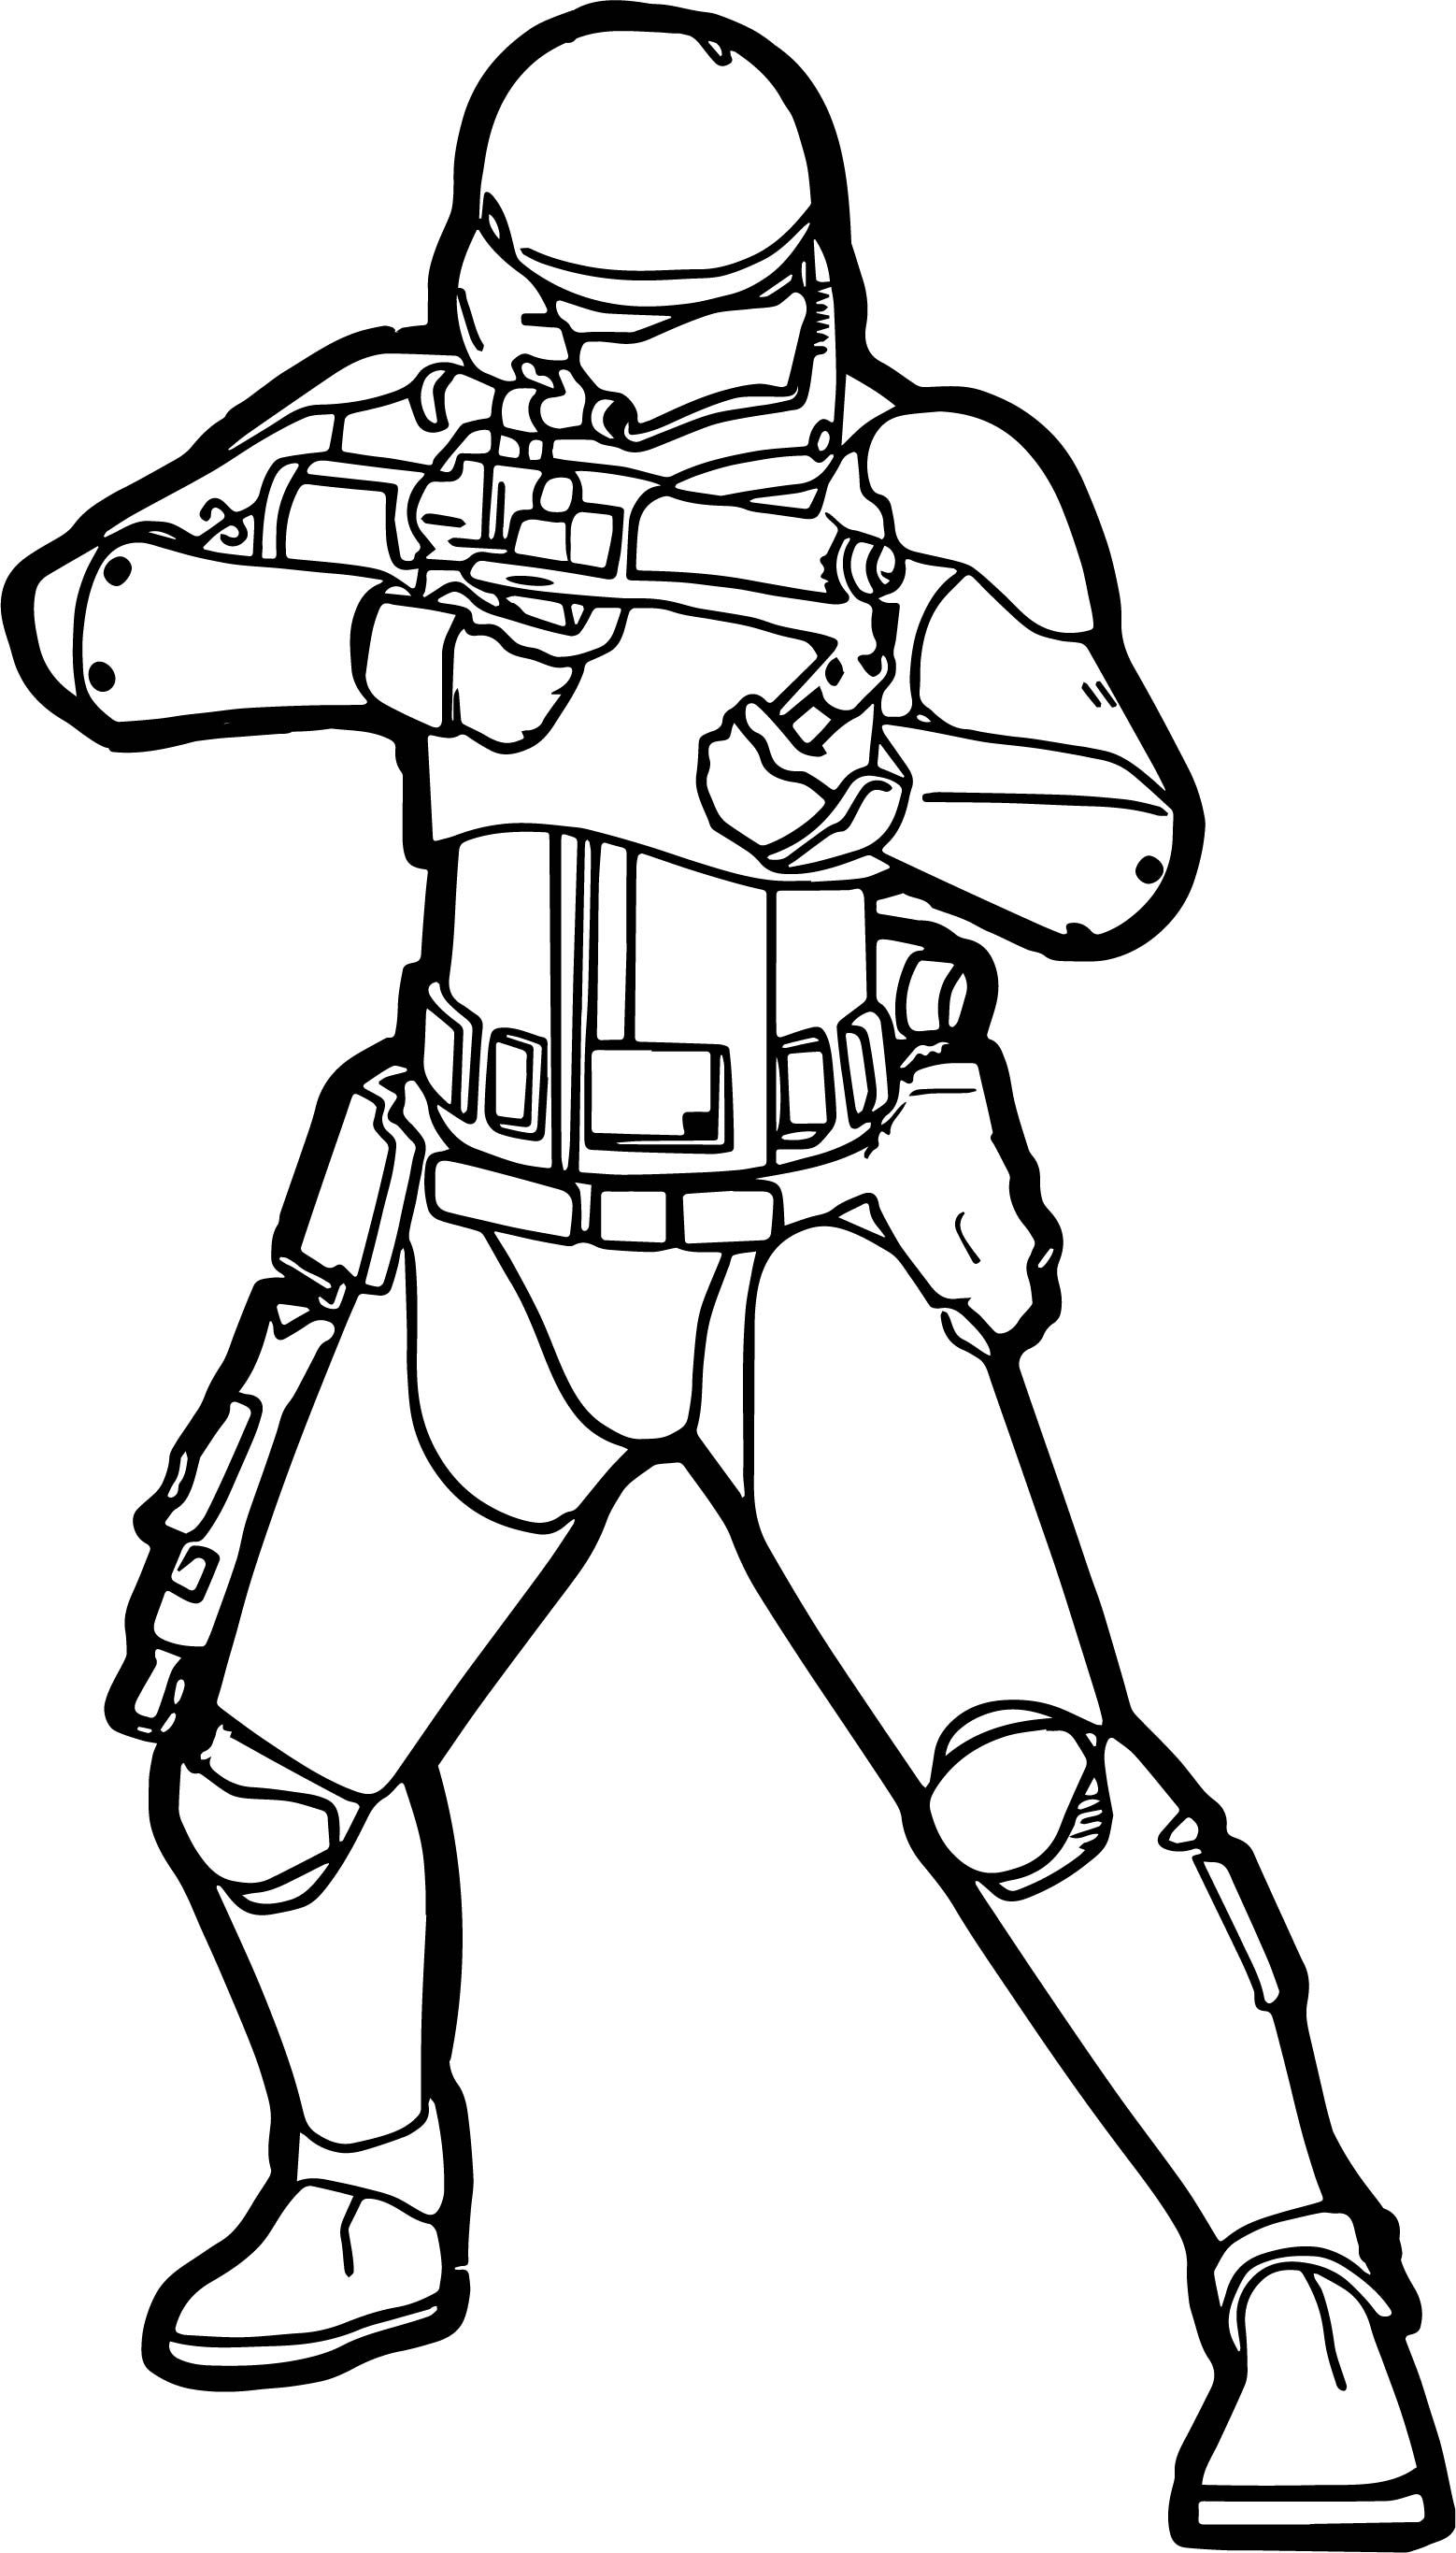 Cool Star Wars The Force Awakens Stormtrooper Coloring Page Star Wars Coloring Sheet Coloring Pages For Kids Star Wars Silhouette